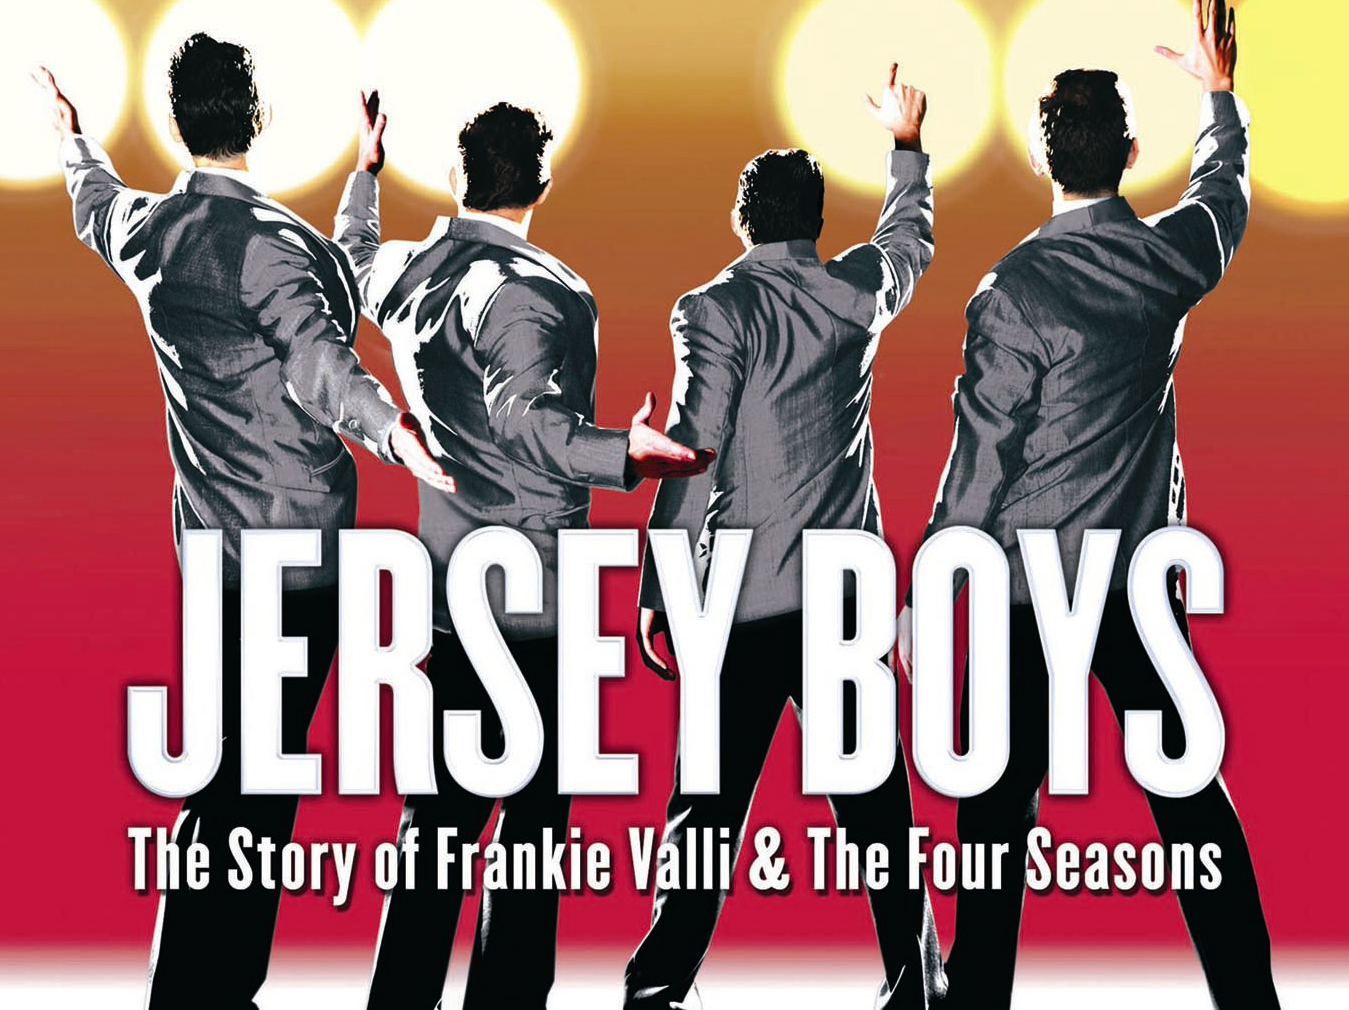 Jersey Boys, please do so.